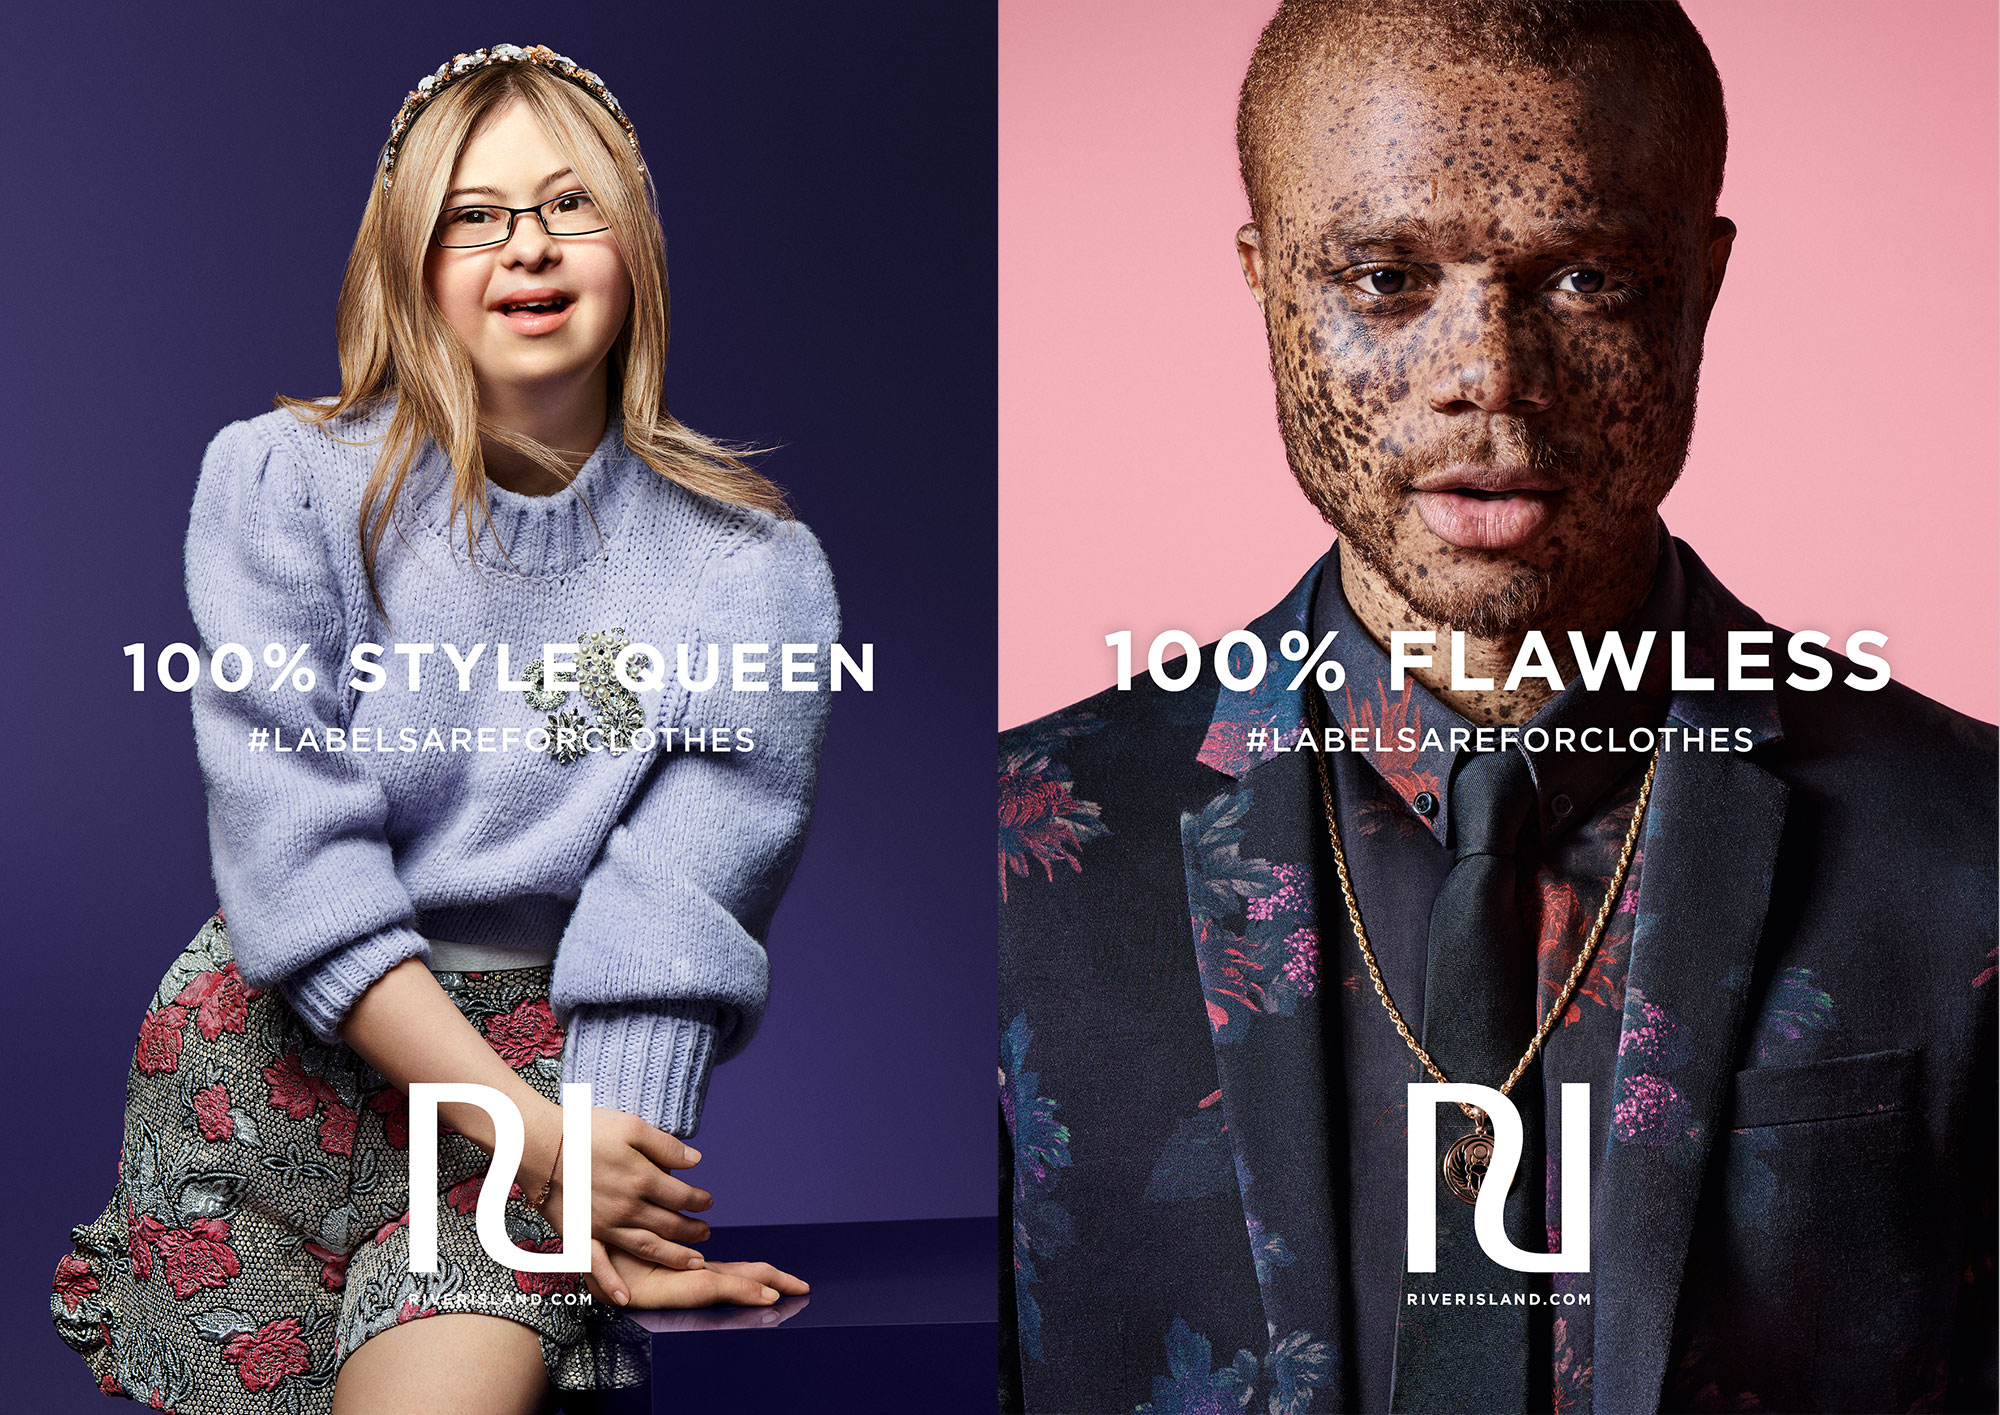 Is this the most inclusive fashion ad campaign around? | Creative Bloq